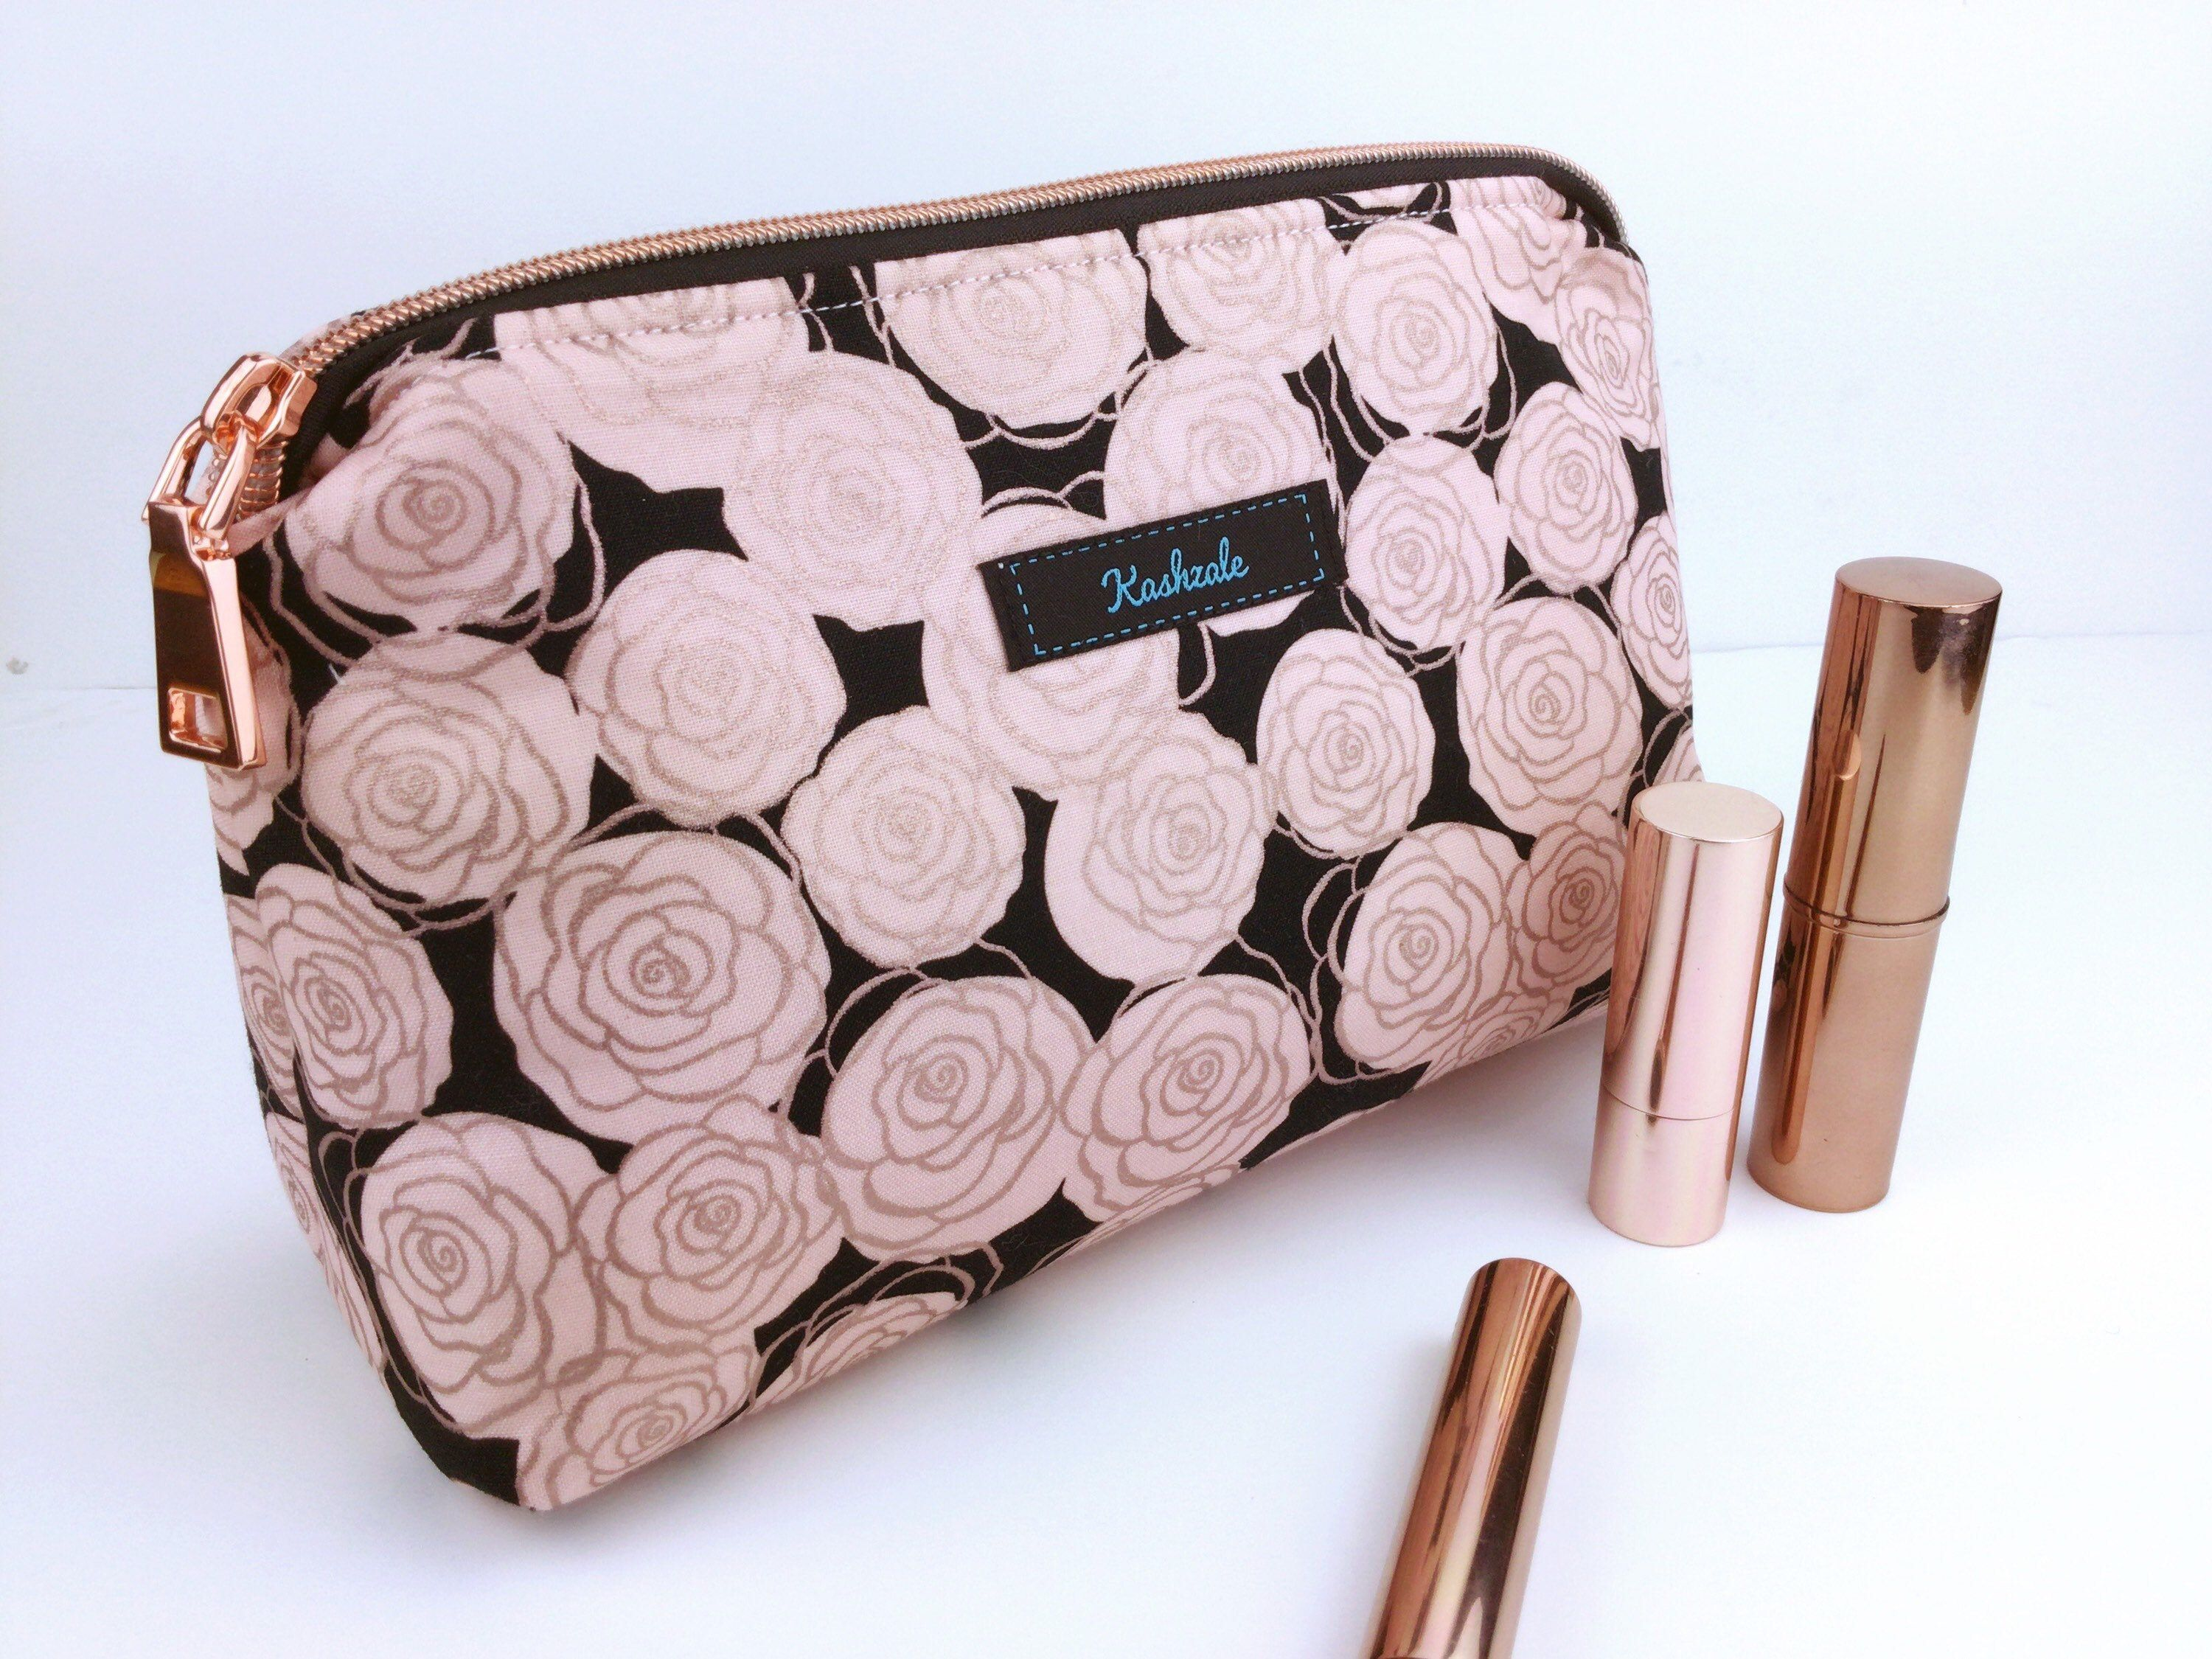 Rose Gold Makeup Bag, Rose Gold Roses Cosmetic Bag. Medium